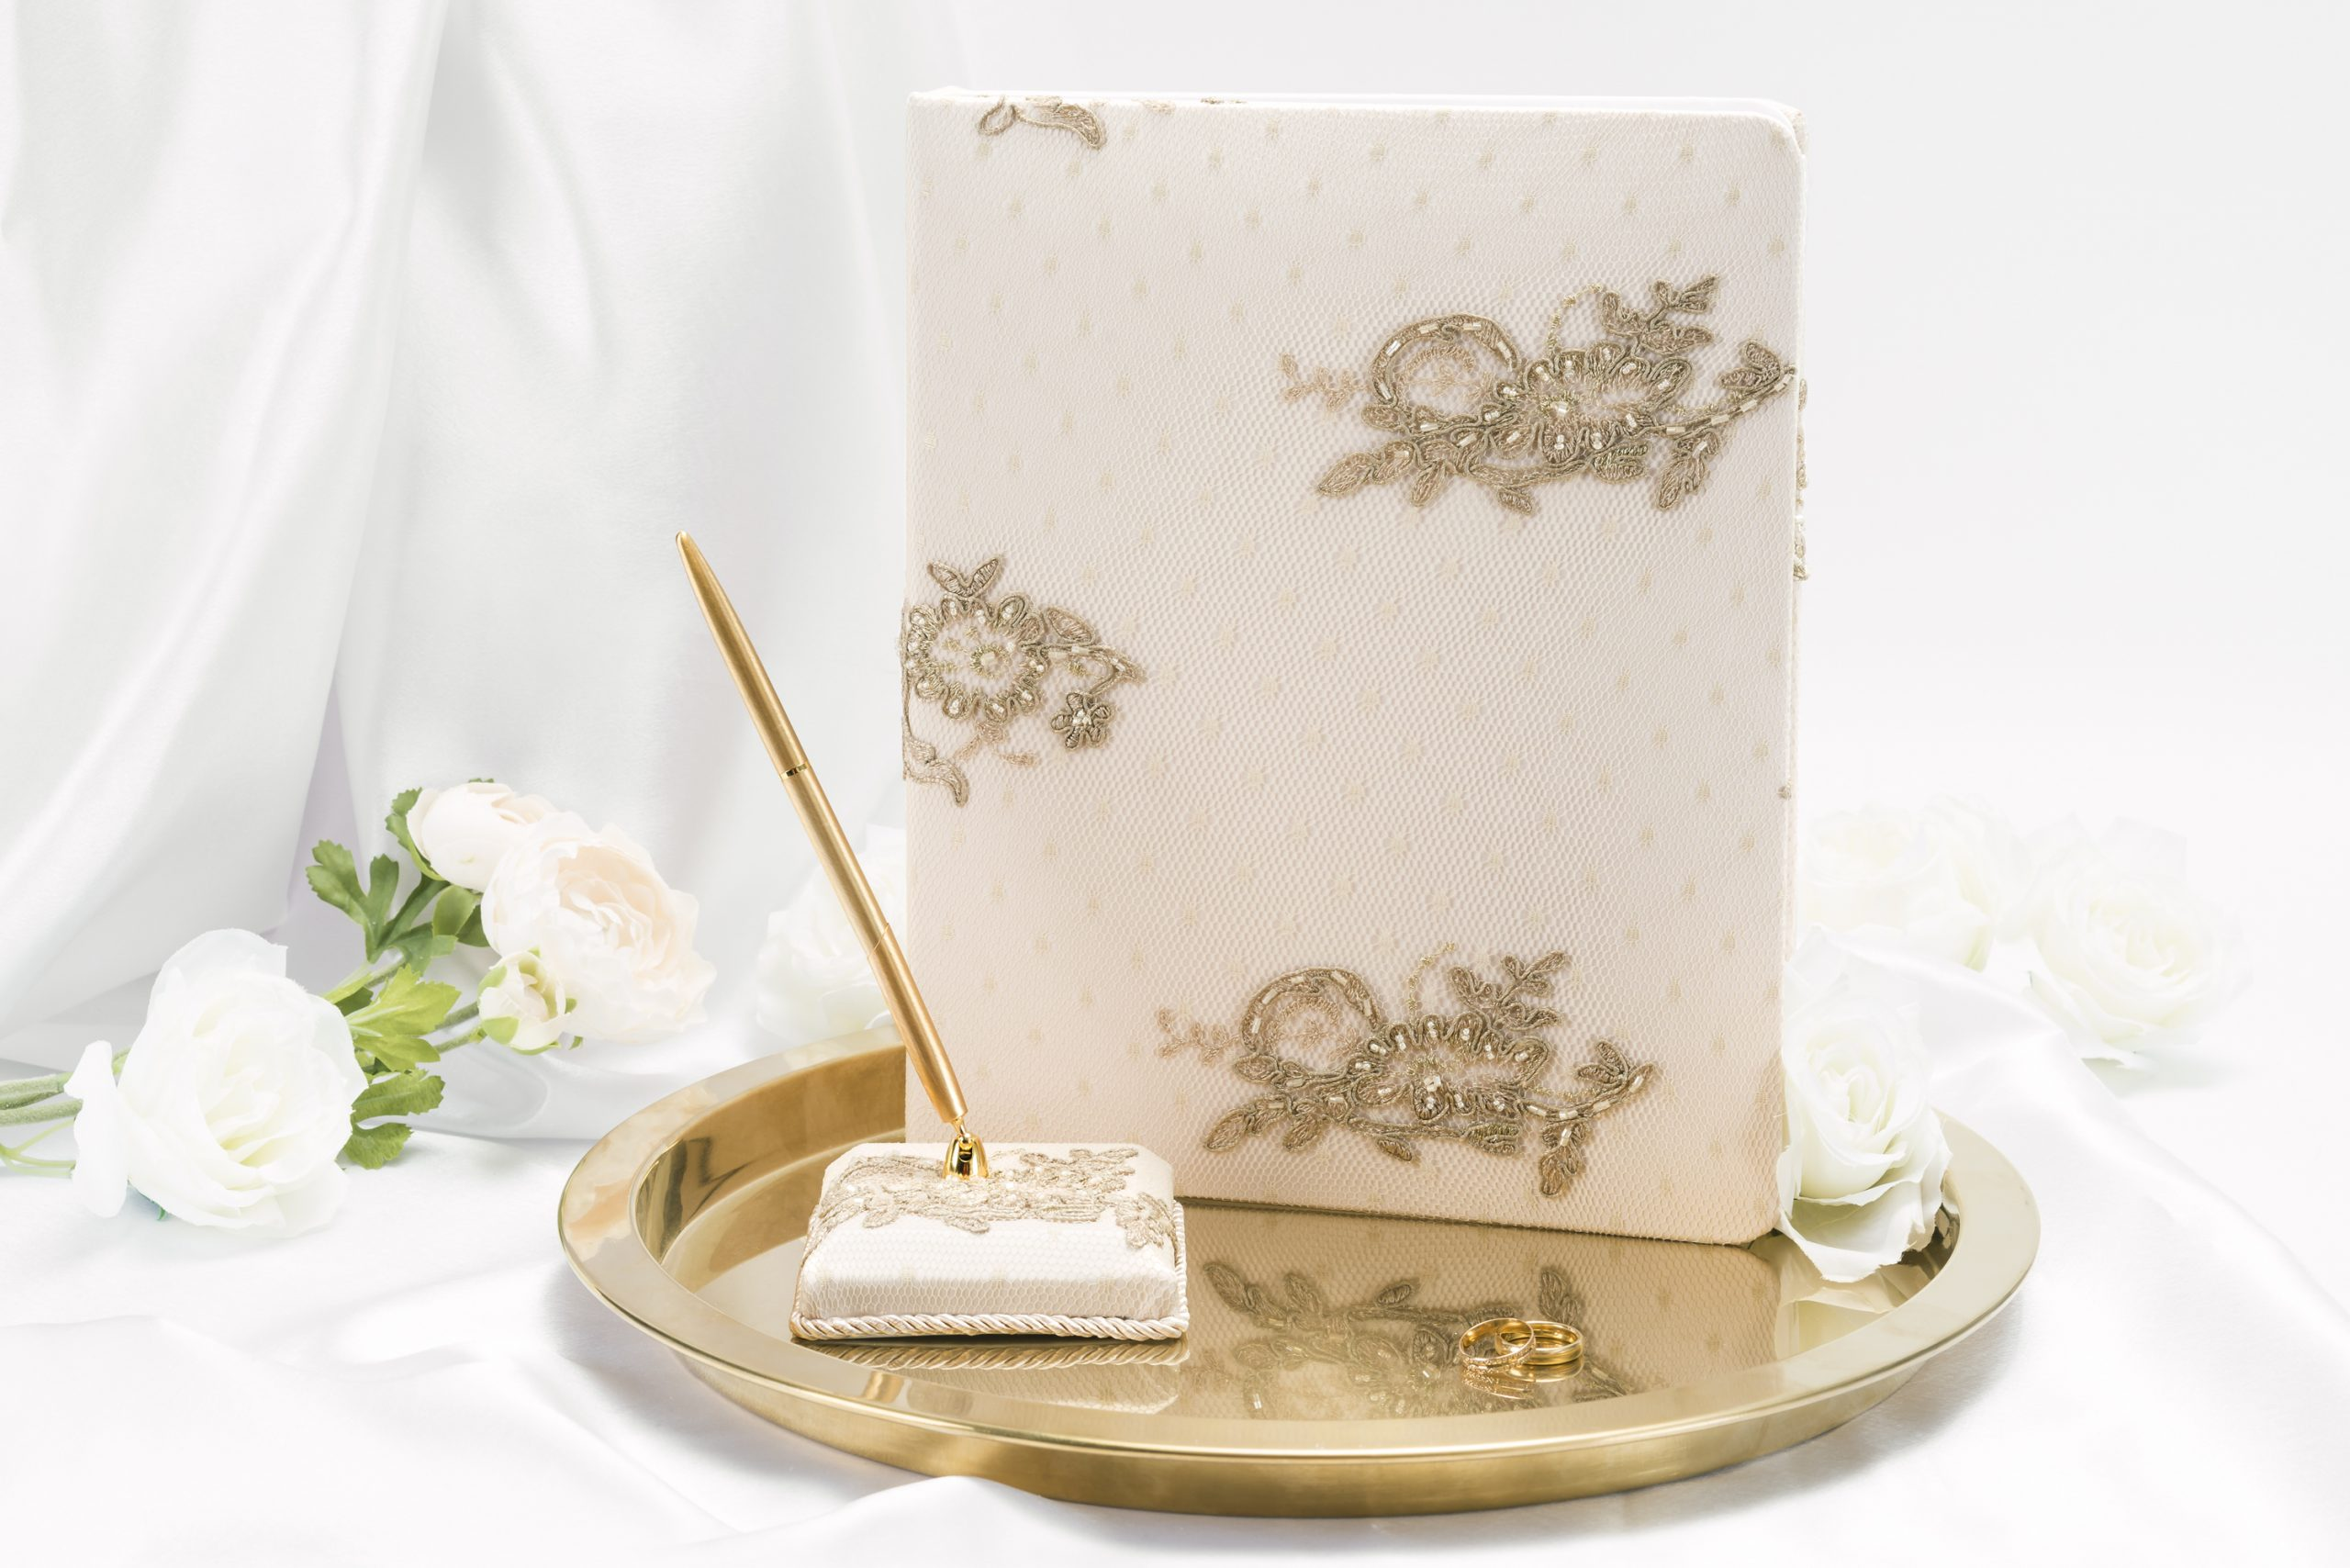 book & stationery_product photography